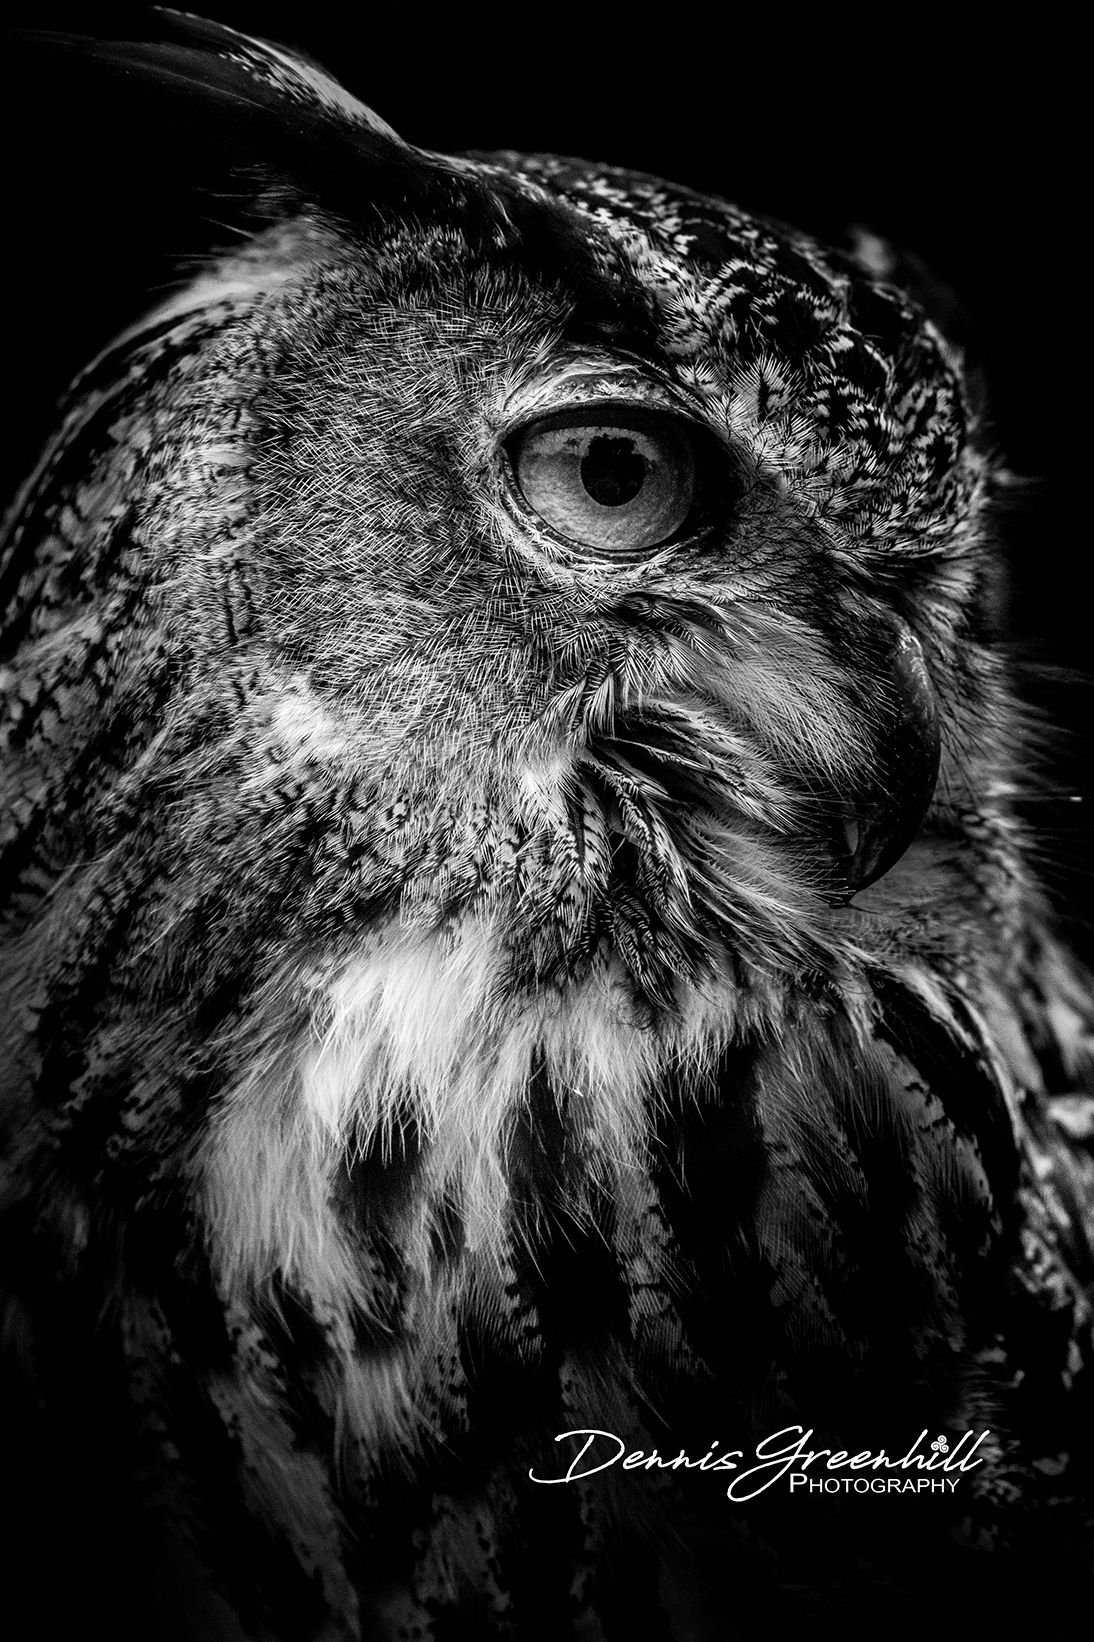 Find us at www.greenhillsent.com This is one of my favorites: It has hung in a couple of galleries and has sold very well. European Eagle Owl #wildlifephotography #owl #giftidea #photography #printsforsale #interiordesignideas #interiordesign #groomsmengift #groomsmengiftidea #bridesmaidgift #homedecor #bridesmaidgiftidea #wallart #weddinggift